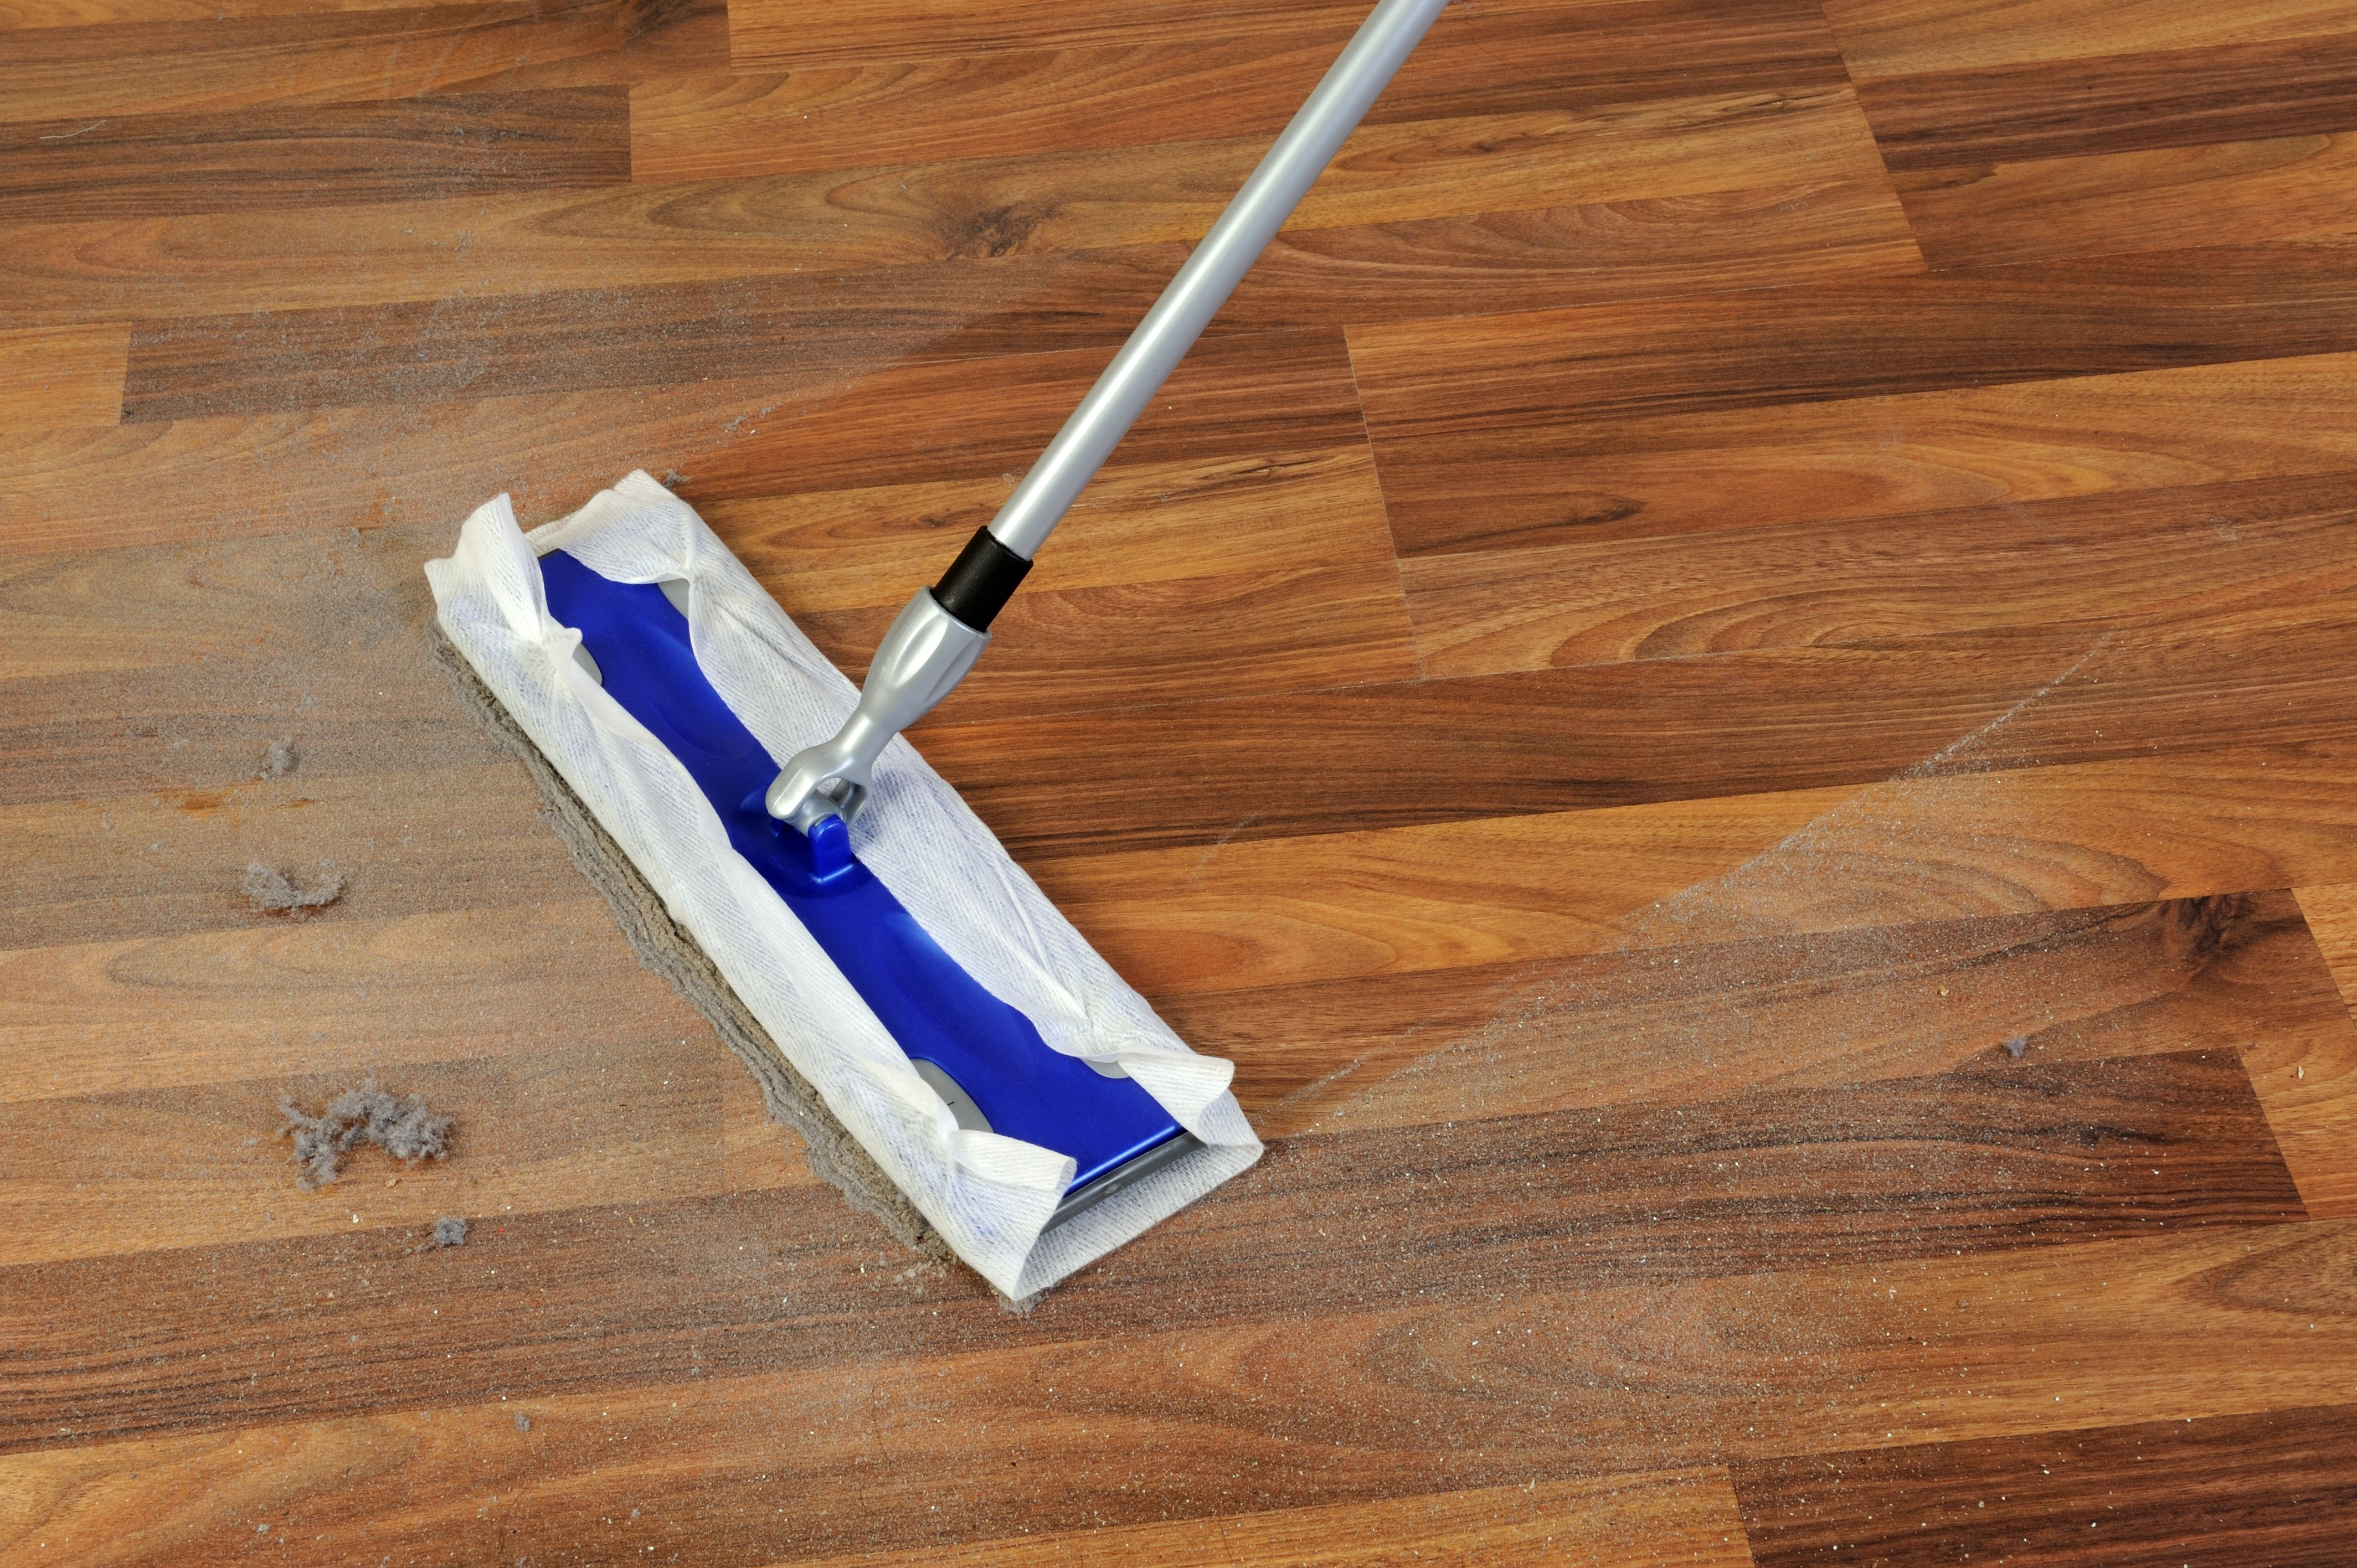 5 Things That Are Ruining Your Hardwood Floors